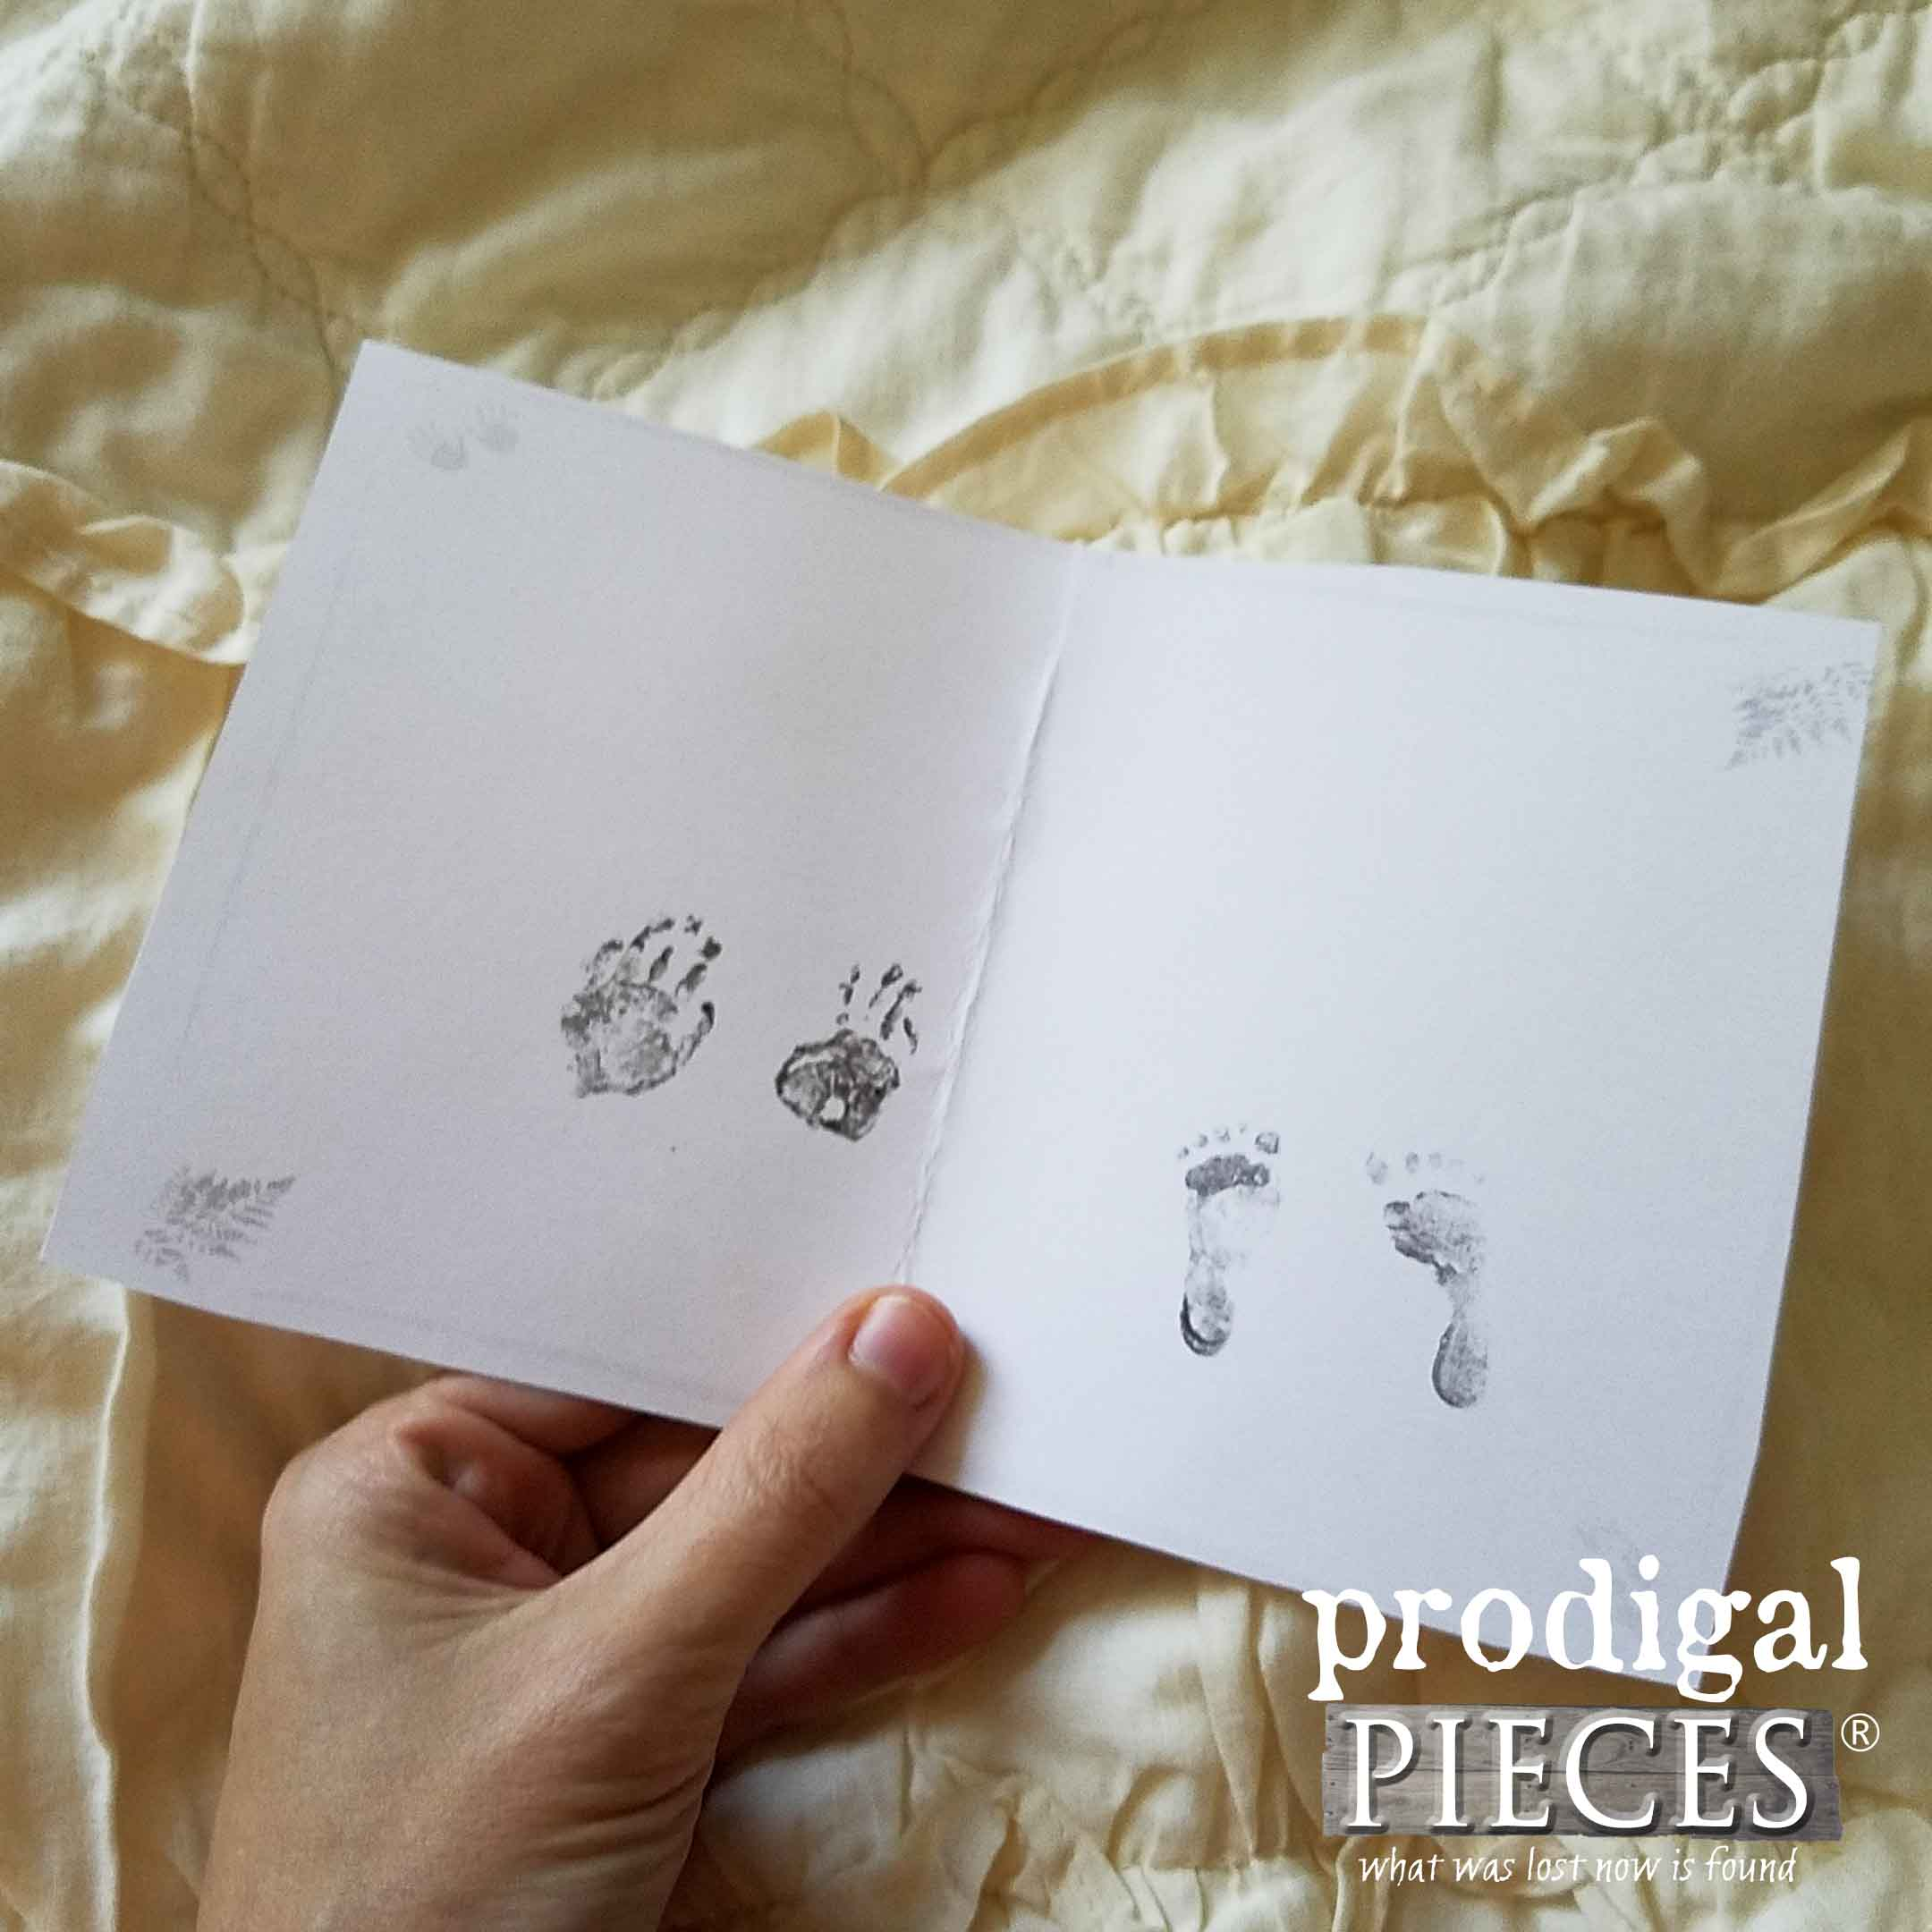 Premature Baby Girl Footprints ~ Healing after Subchorionic Hematoma | Prodigal Pieces | www.prodigalpieces.com